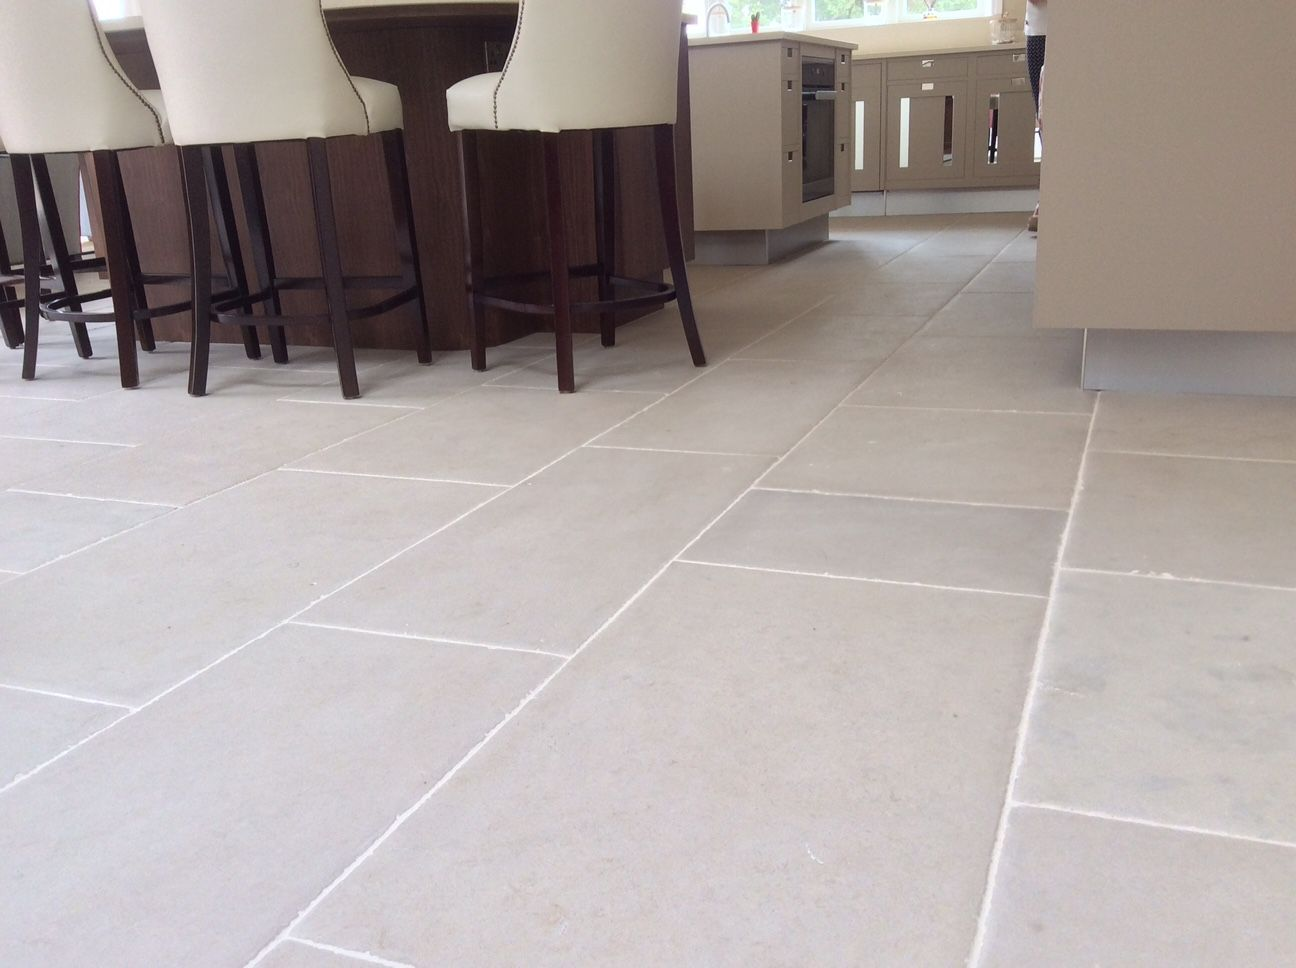 Kitchen Floor Stone Tiles Antiqued Grey Stone Tiles Have Been Used To Create This Grey Stone